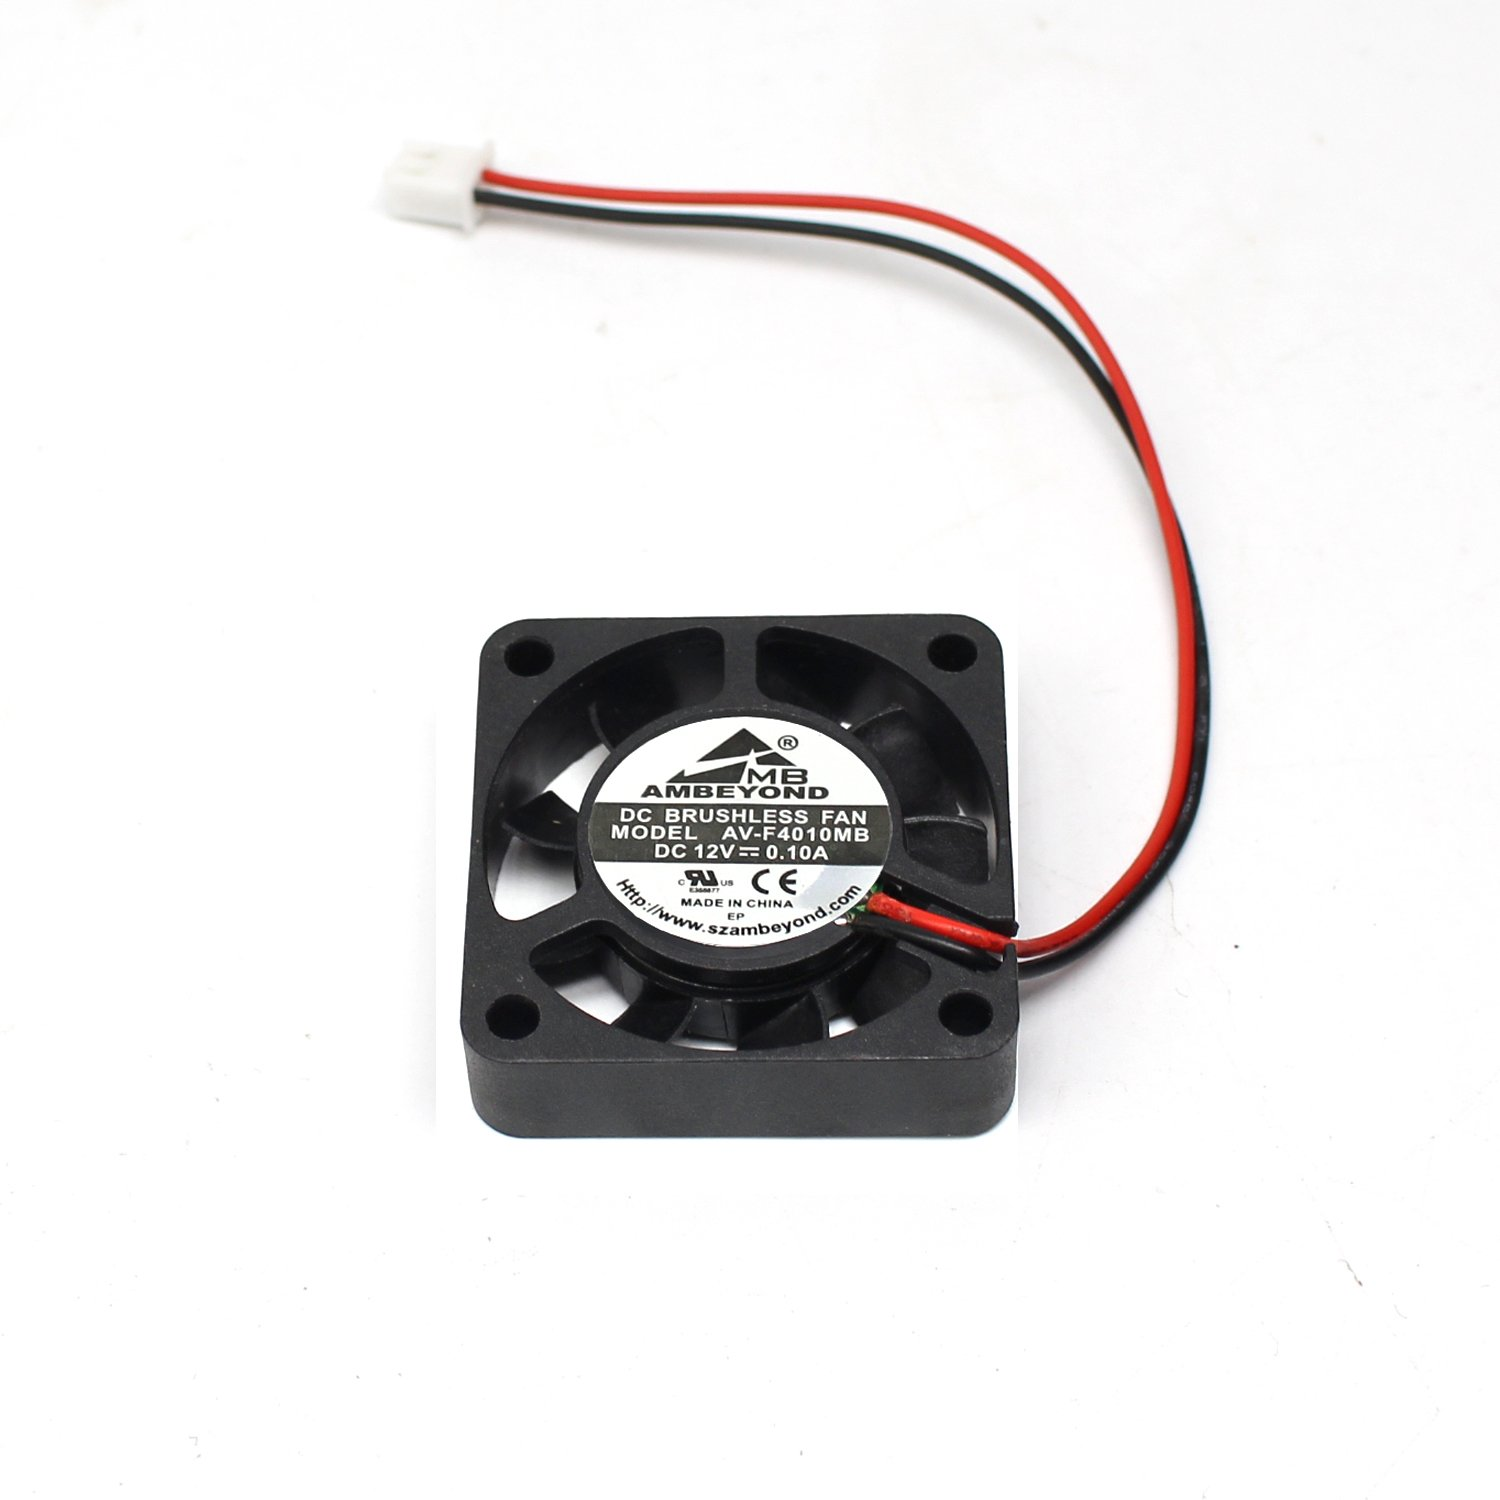 2-packs 40 x 40 x 10mm 4010 12V 0.10A Brushless DC Cooling Fan 2pin AV-F4010MB UL CE by AMBEYOND FAN (Image #6)